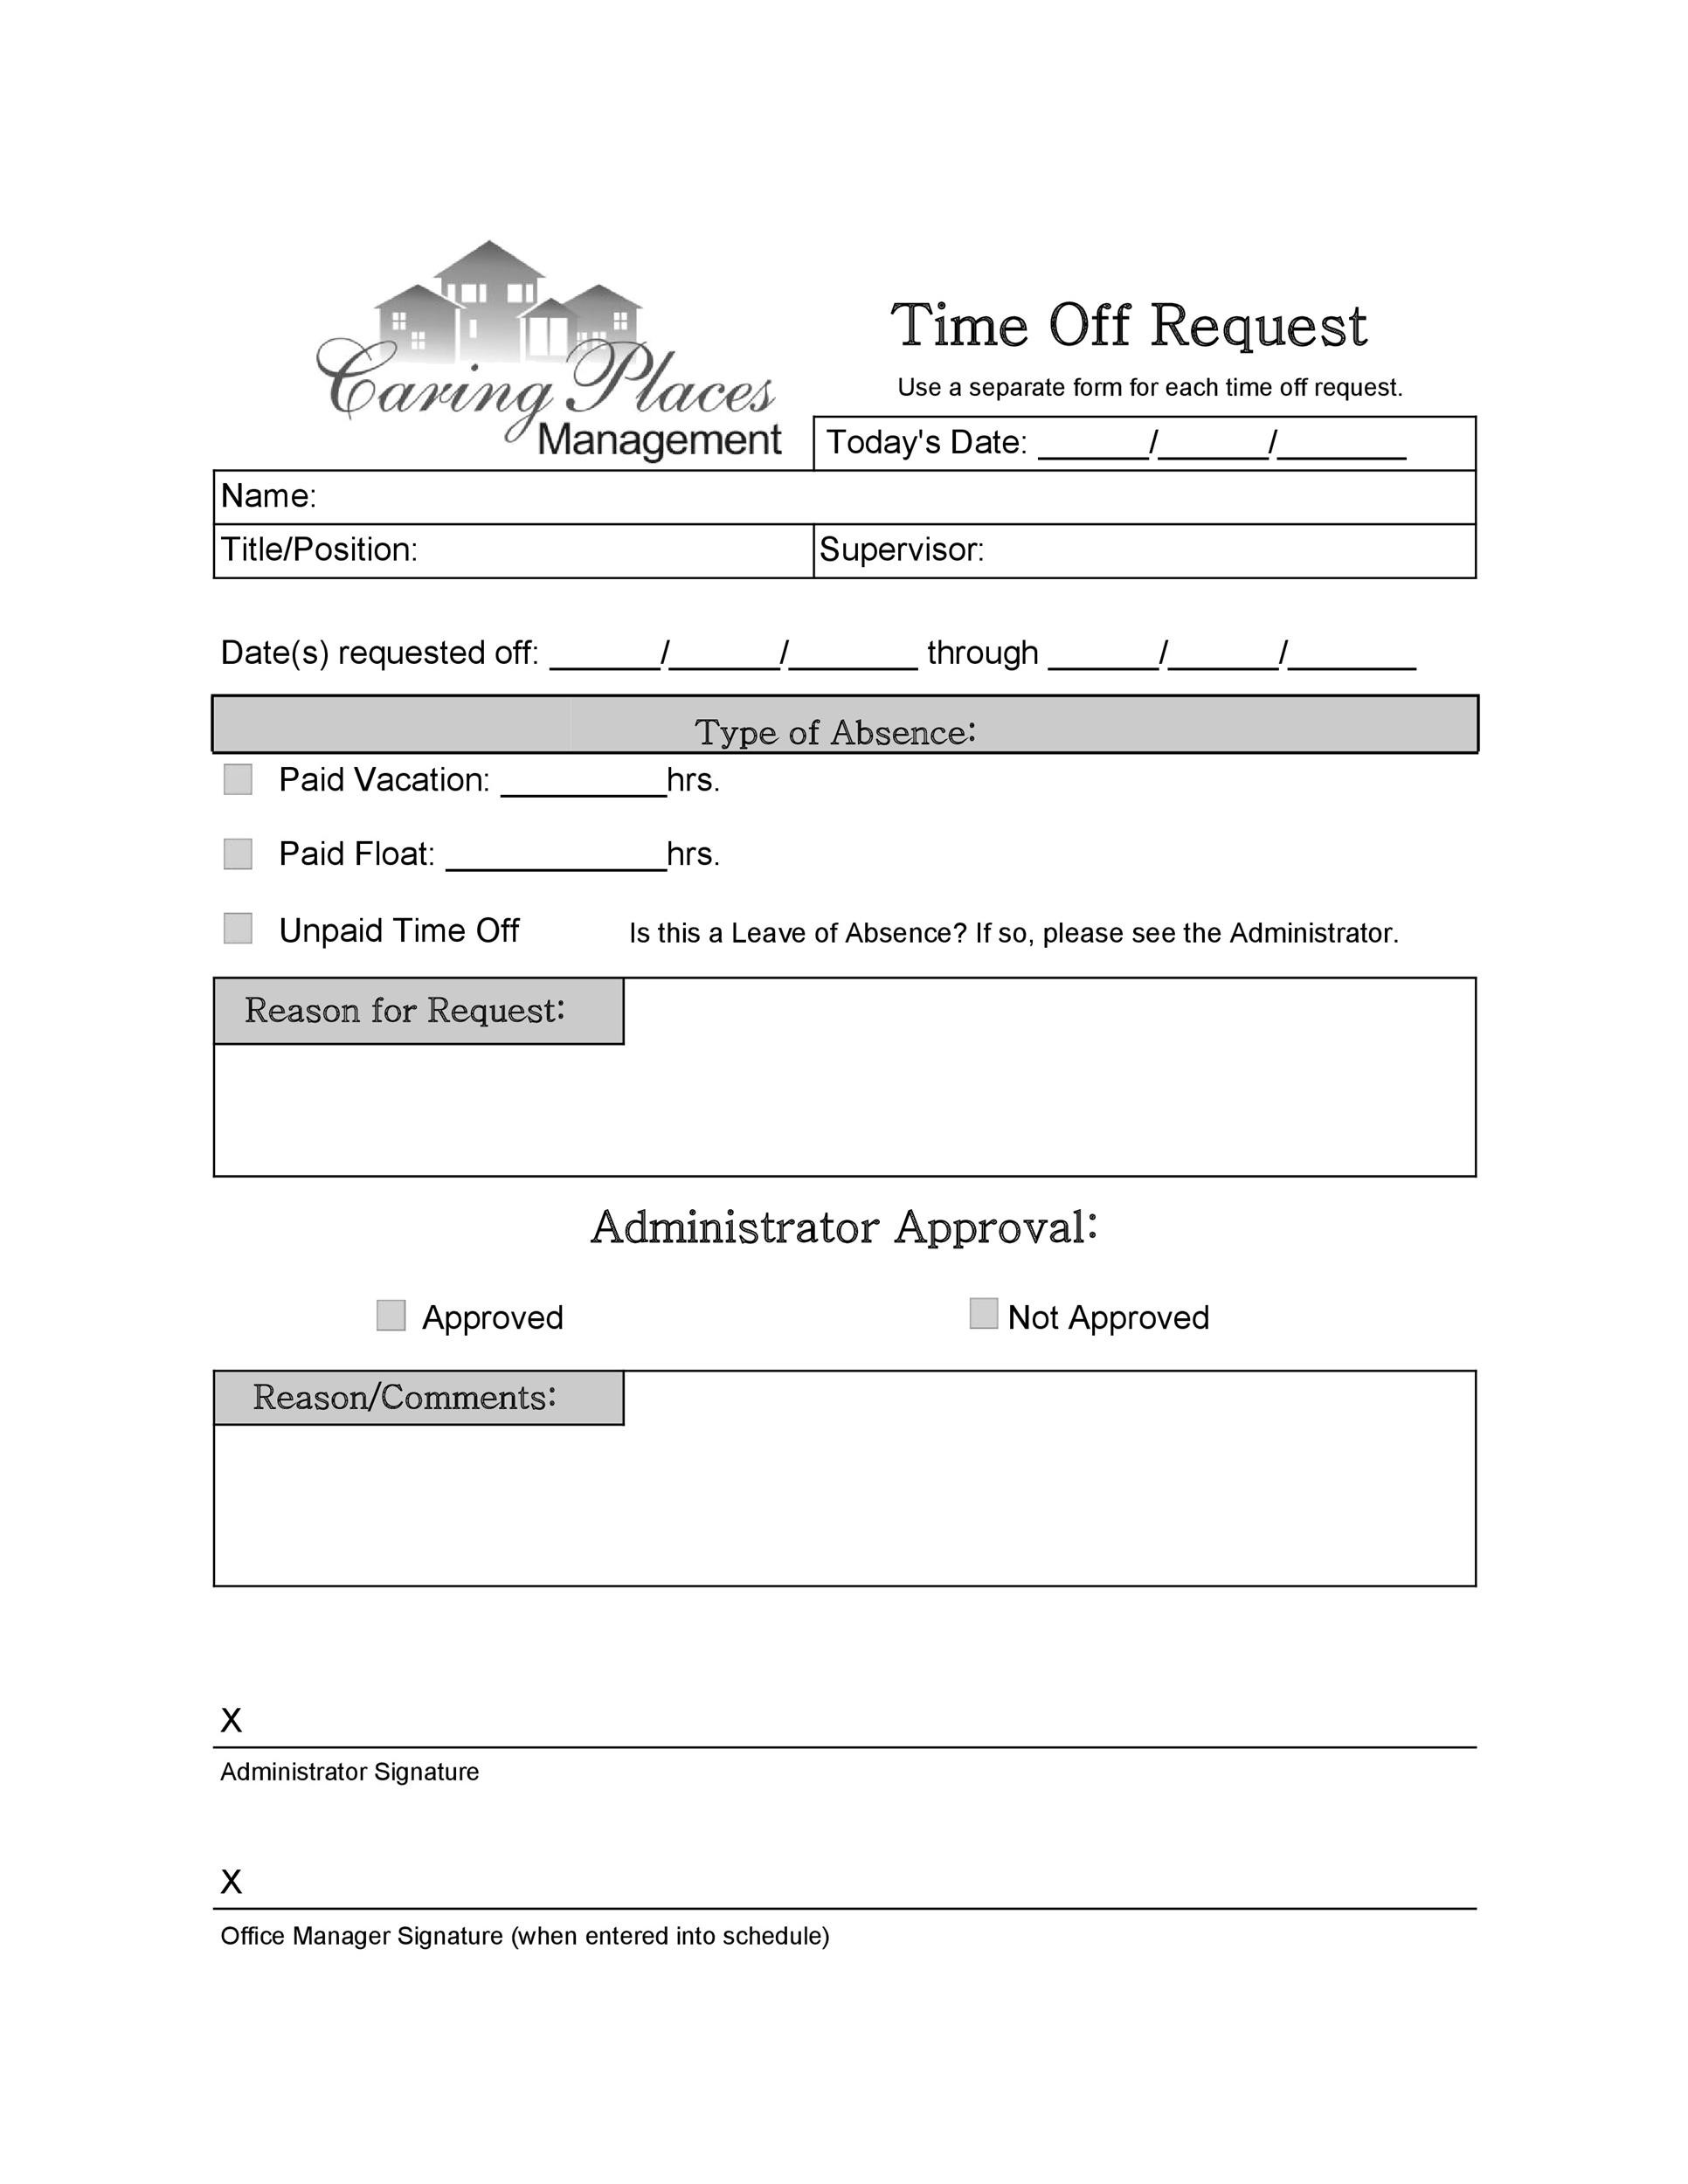 40+ Effective Time Off Request Forms  Templates ᐅ Template Lab